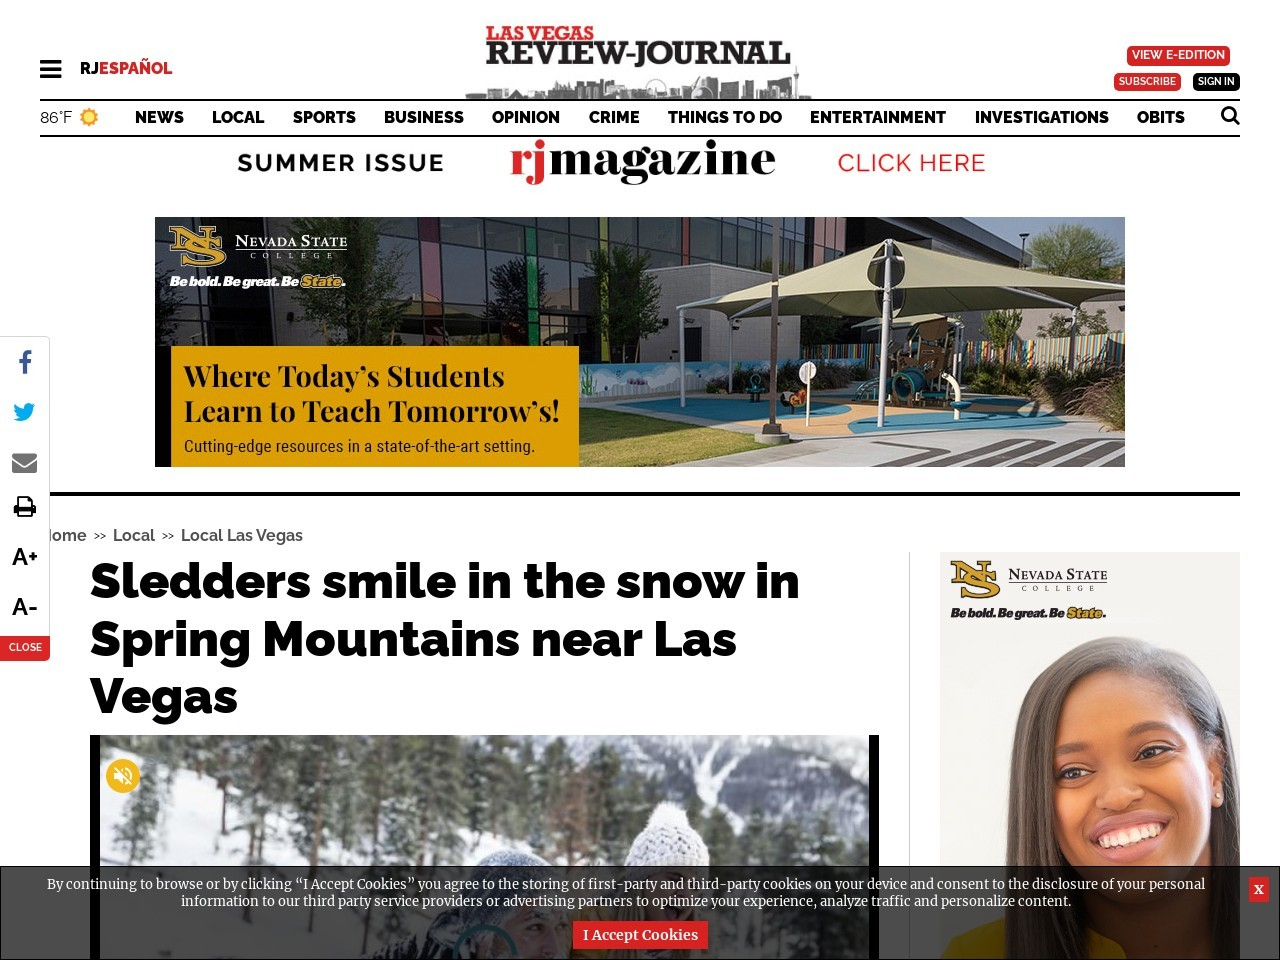 Sledders smile in the snow in Spring Mountains near Las Vegas